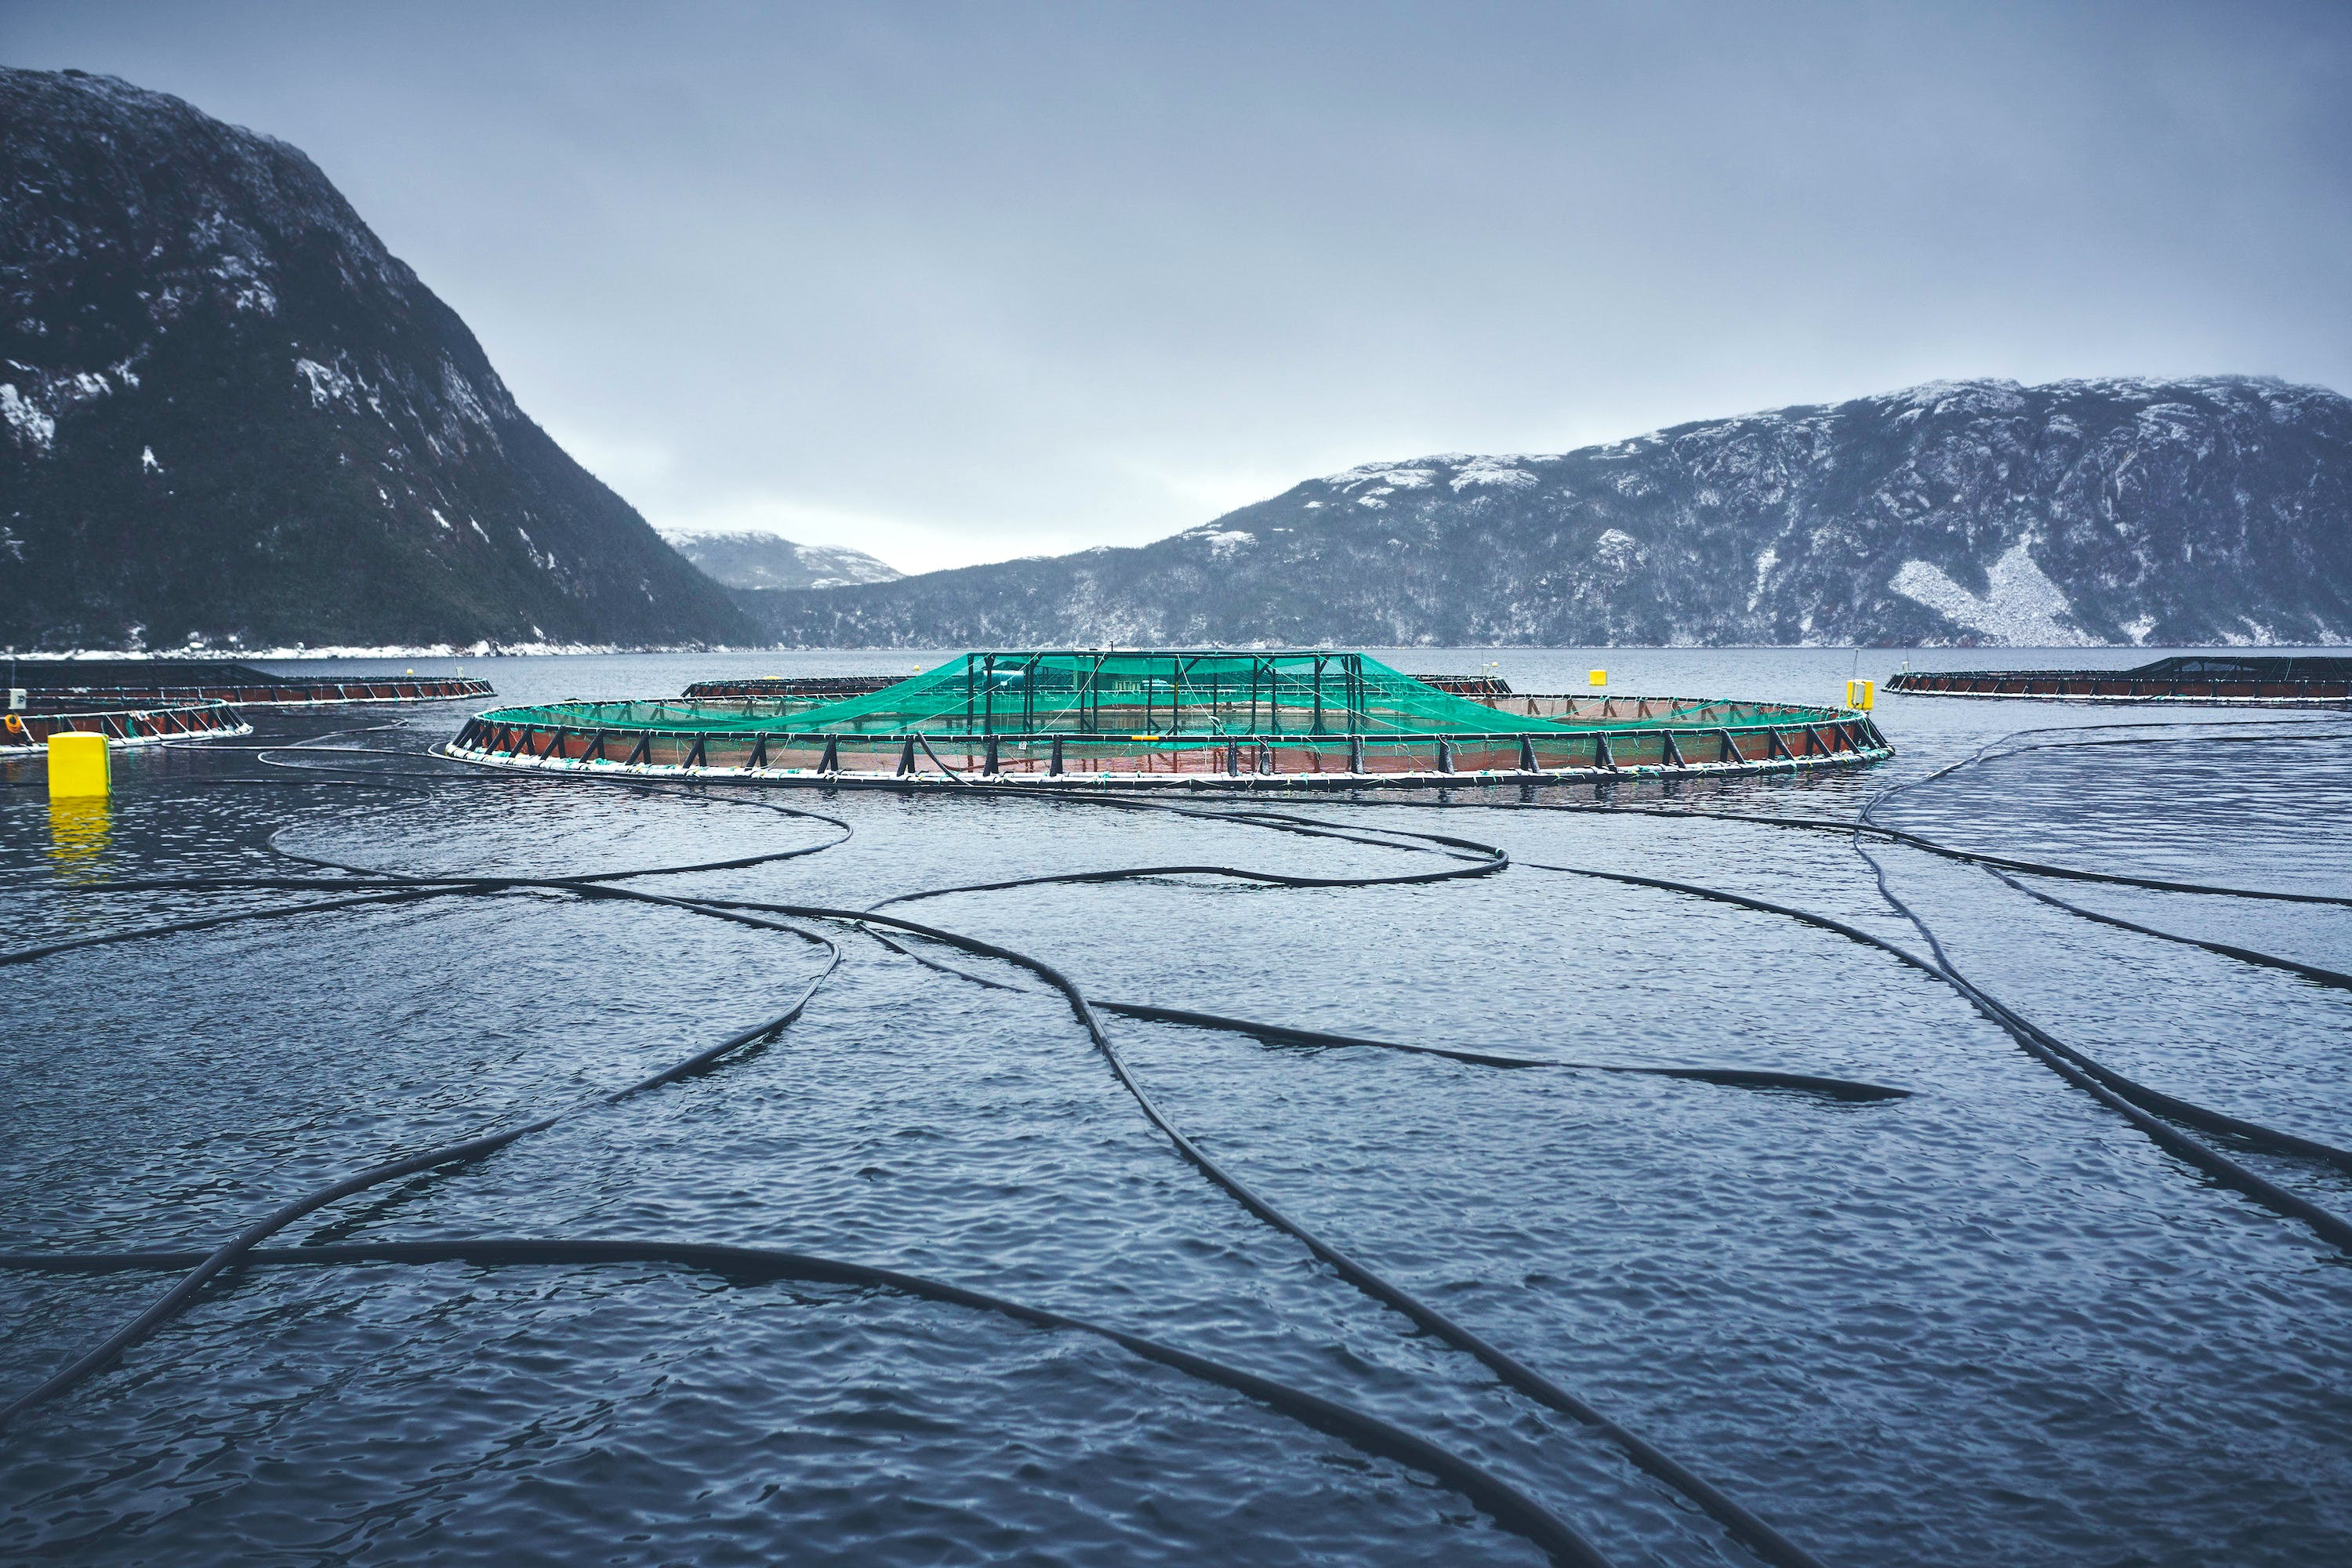 The Department of Fisheries and Oceans (DFO) is leading a discussion towards Canada's first-ever Aquaculture Act. The public has until Jan. 15 to offer comment.